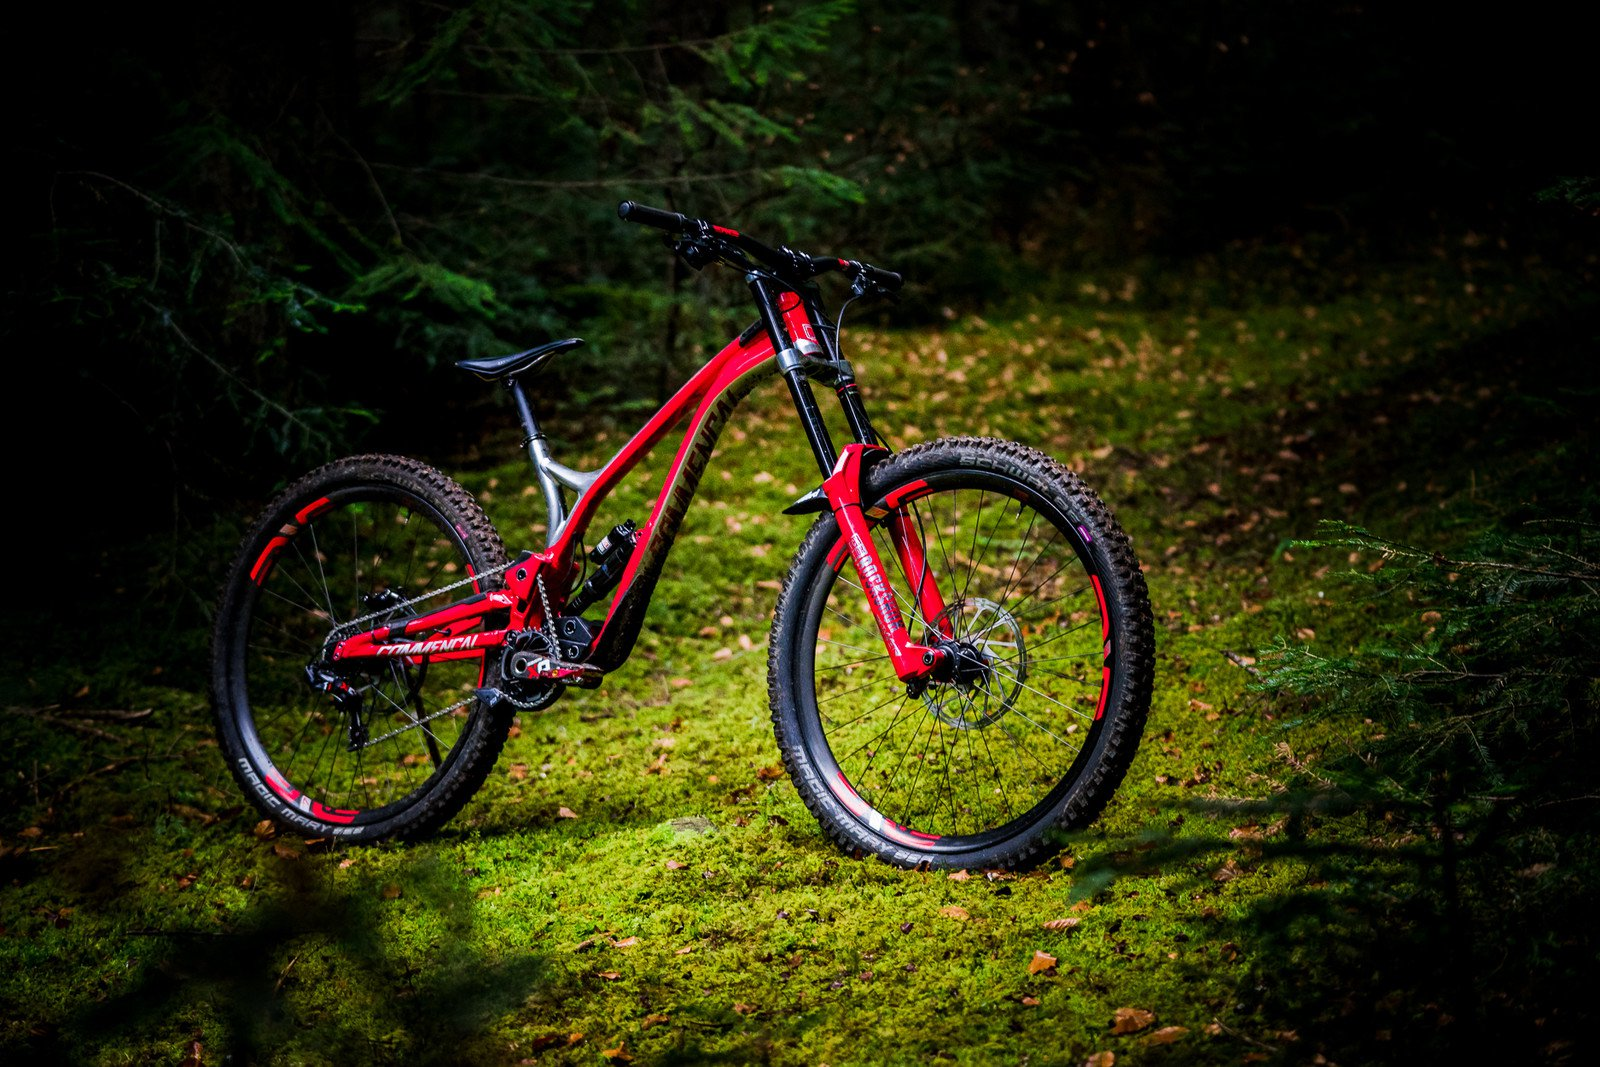 2019 Commencal Vallnord Team Supreme DH V4.3